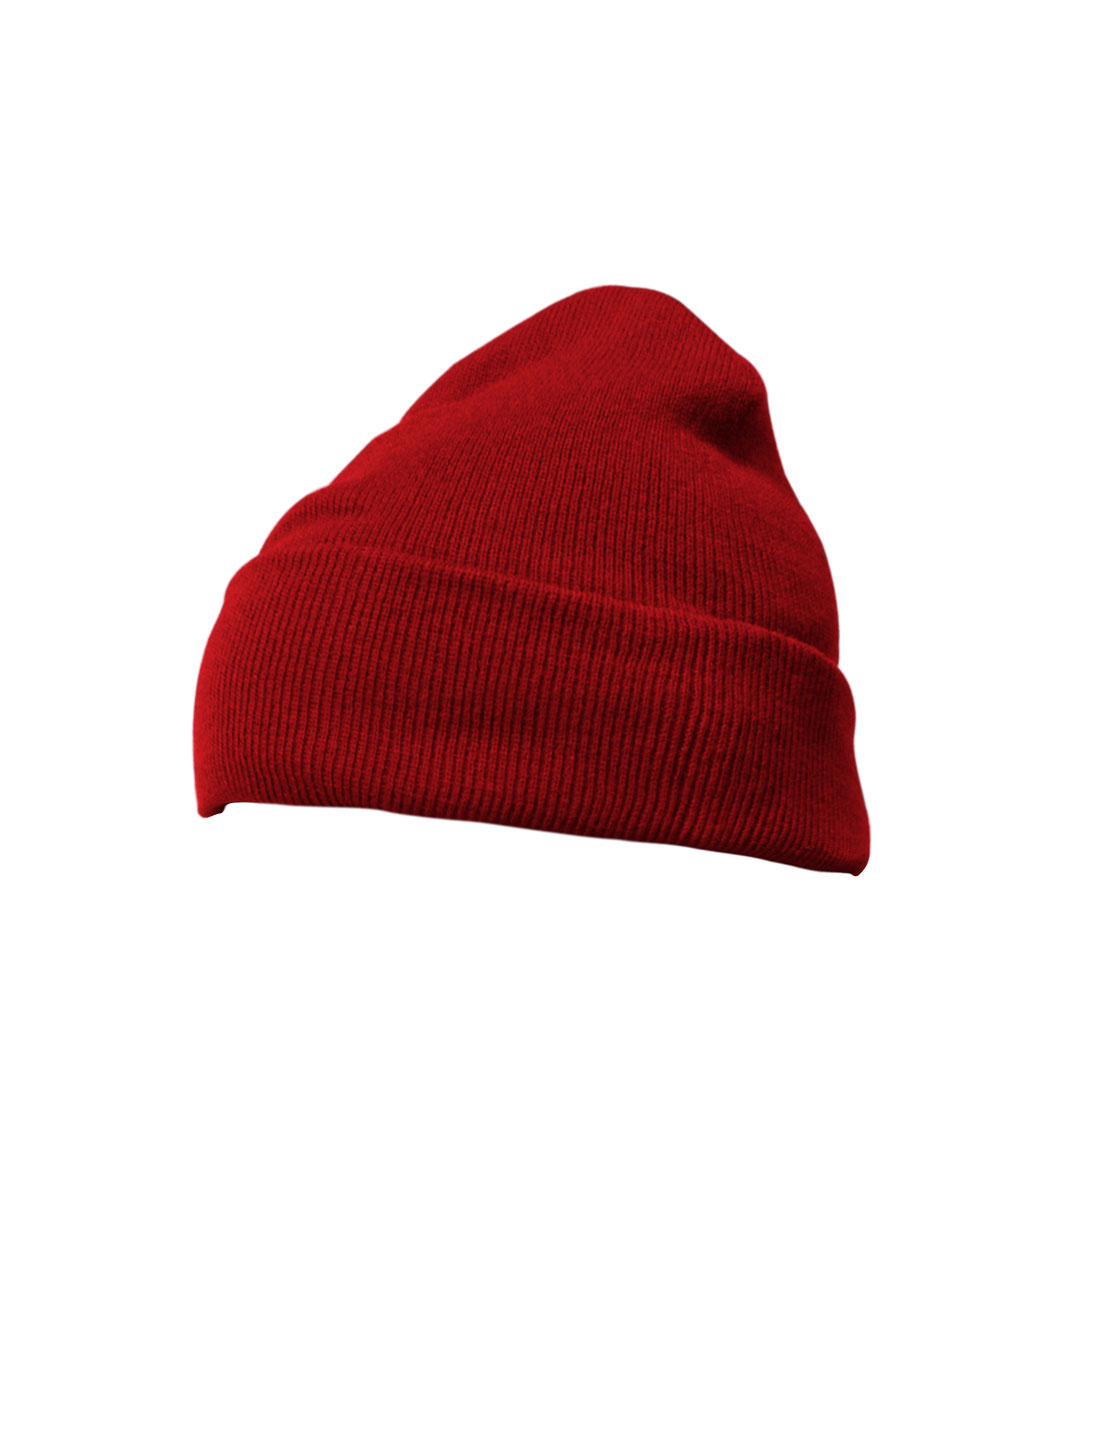 Mens Women Dark Red Knitting Winter Thick Basic Beanie Hat Cap